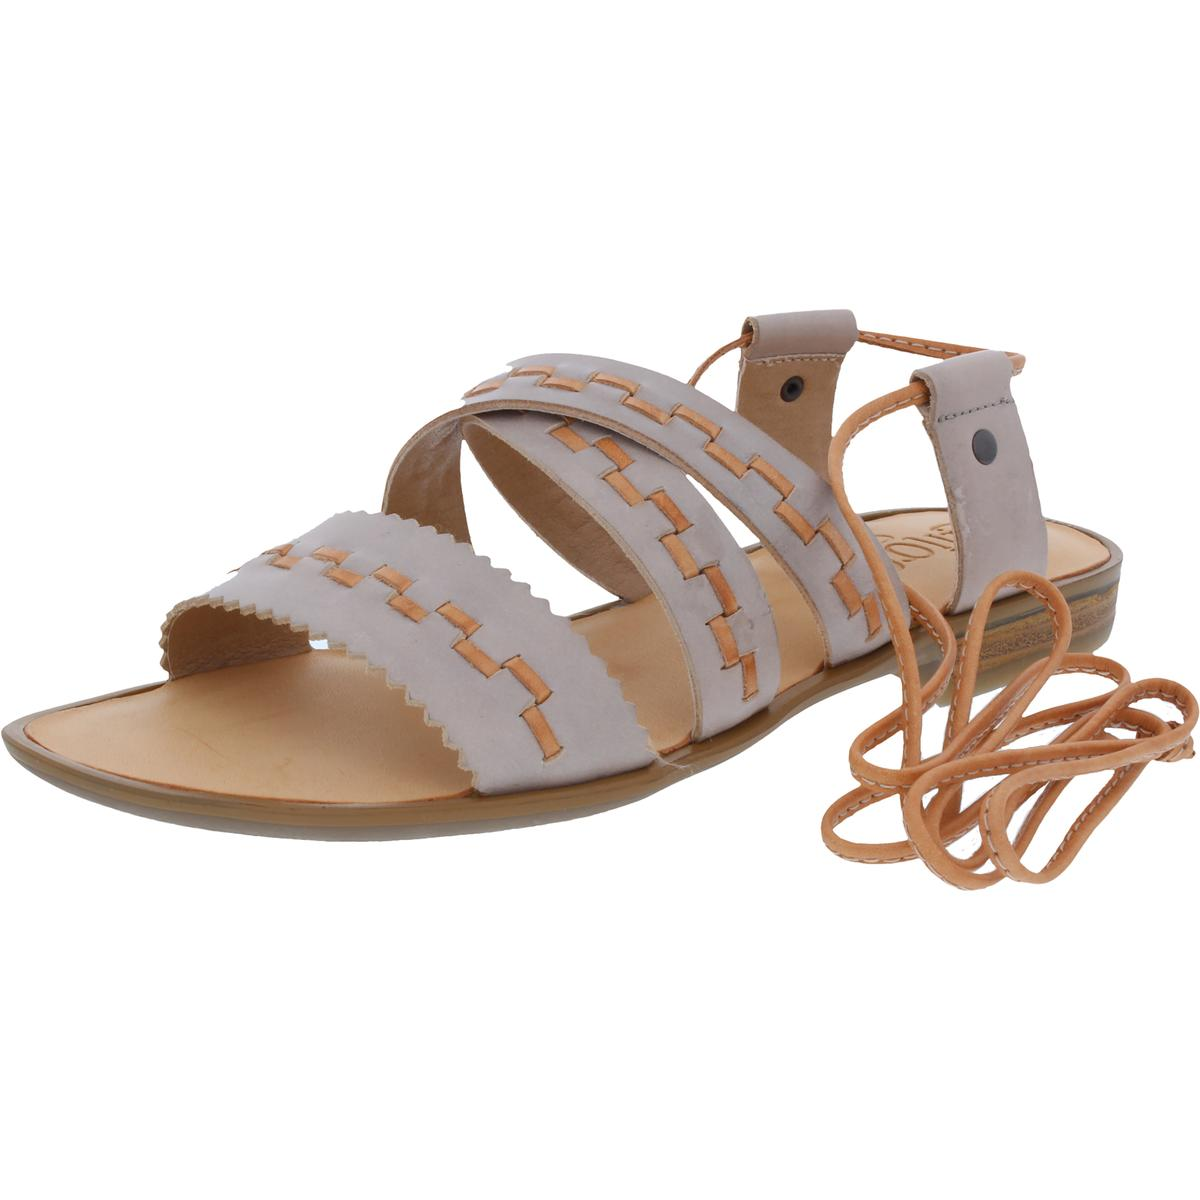 20c7dafa8fec Details about Latigo Womens Gem Open Toe Criss Cross Lace Up Flat Sandals  Shoes BHFO 3744